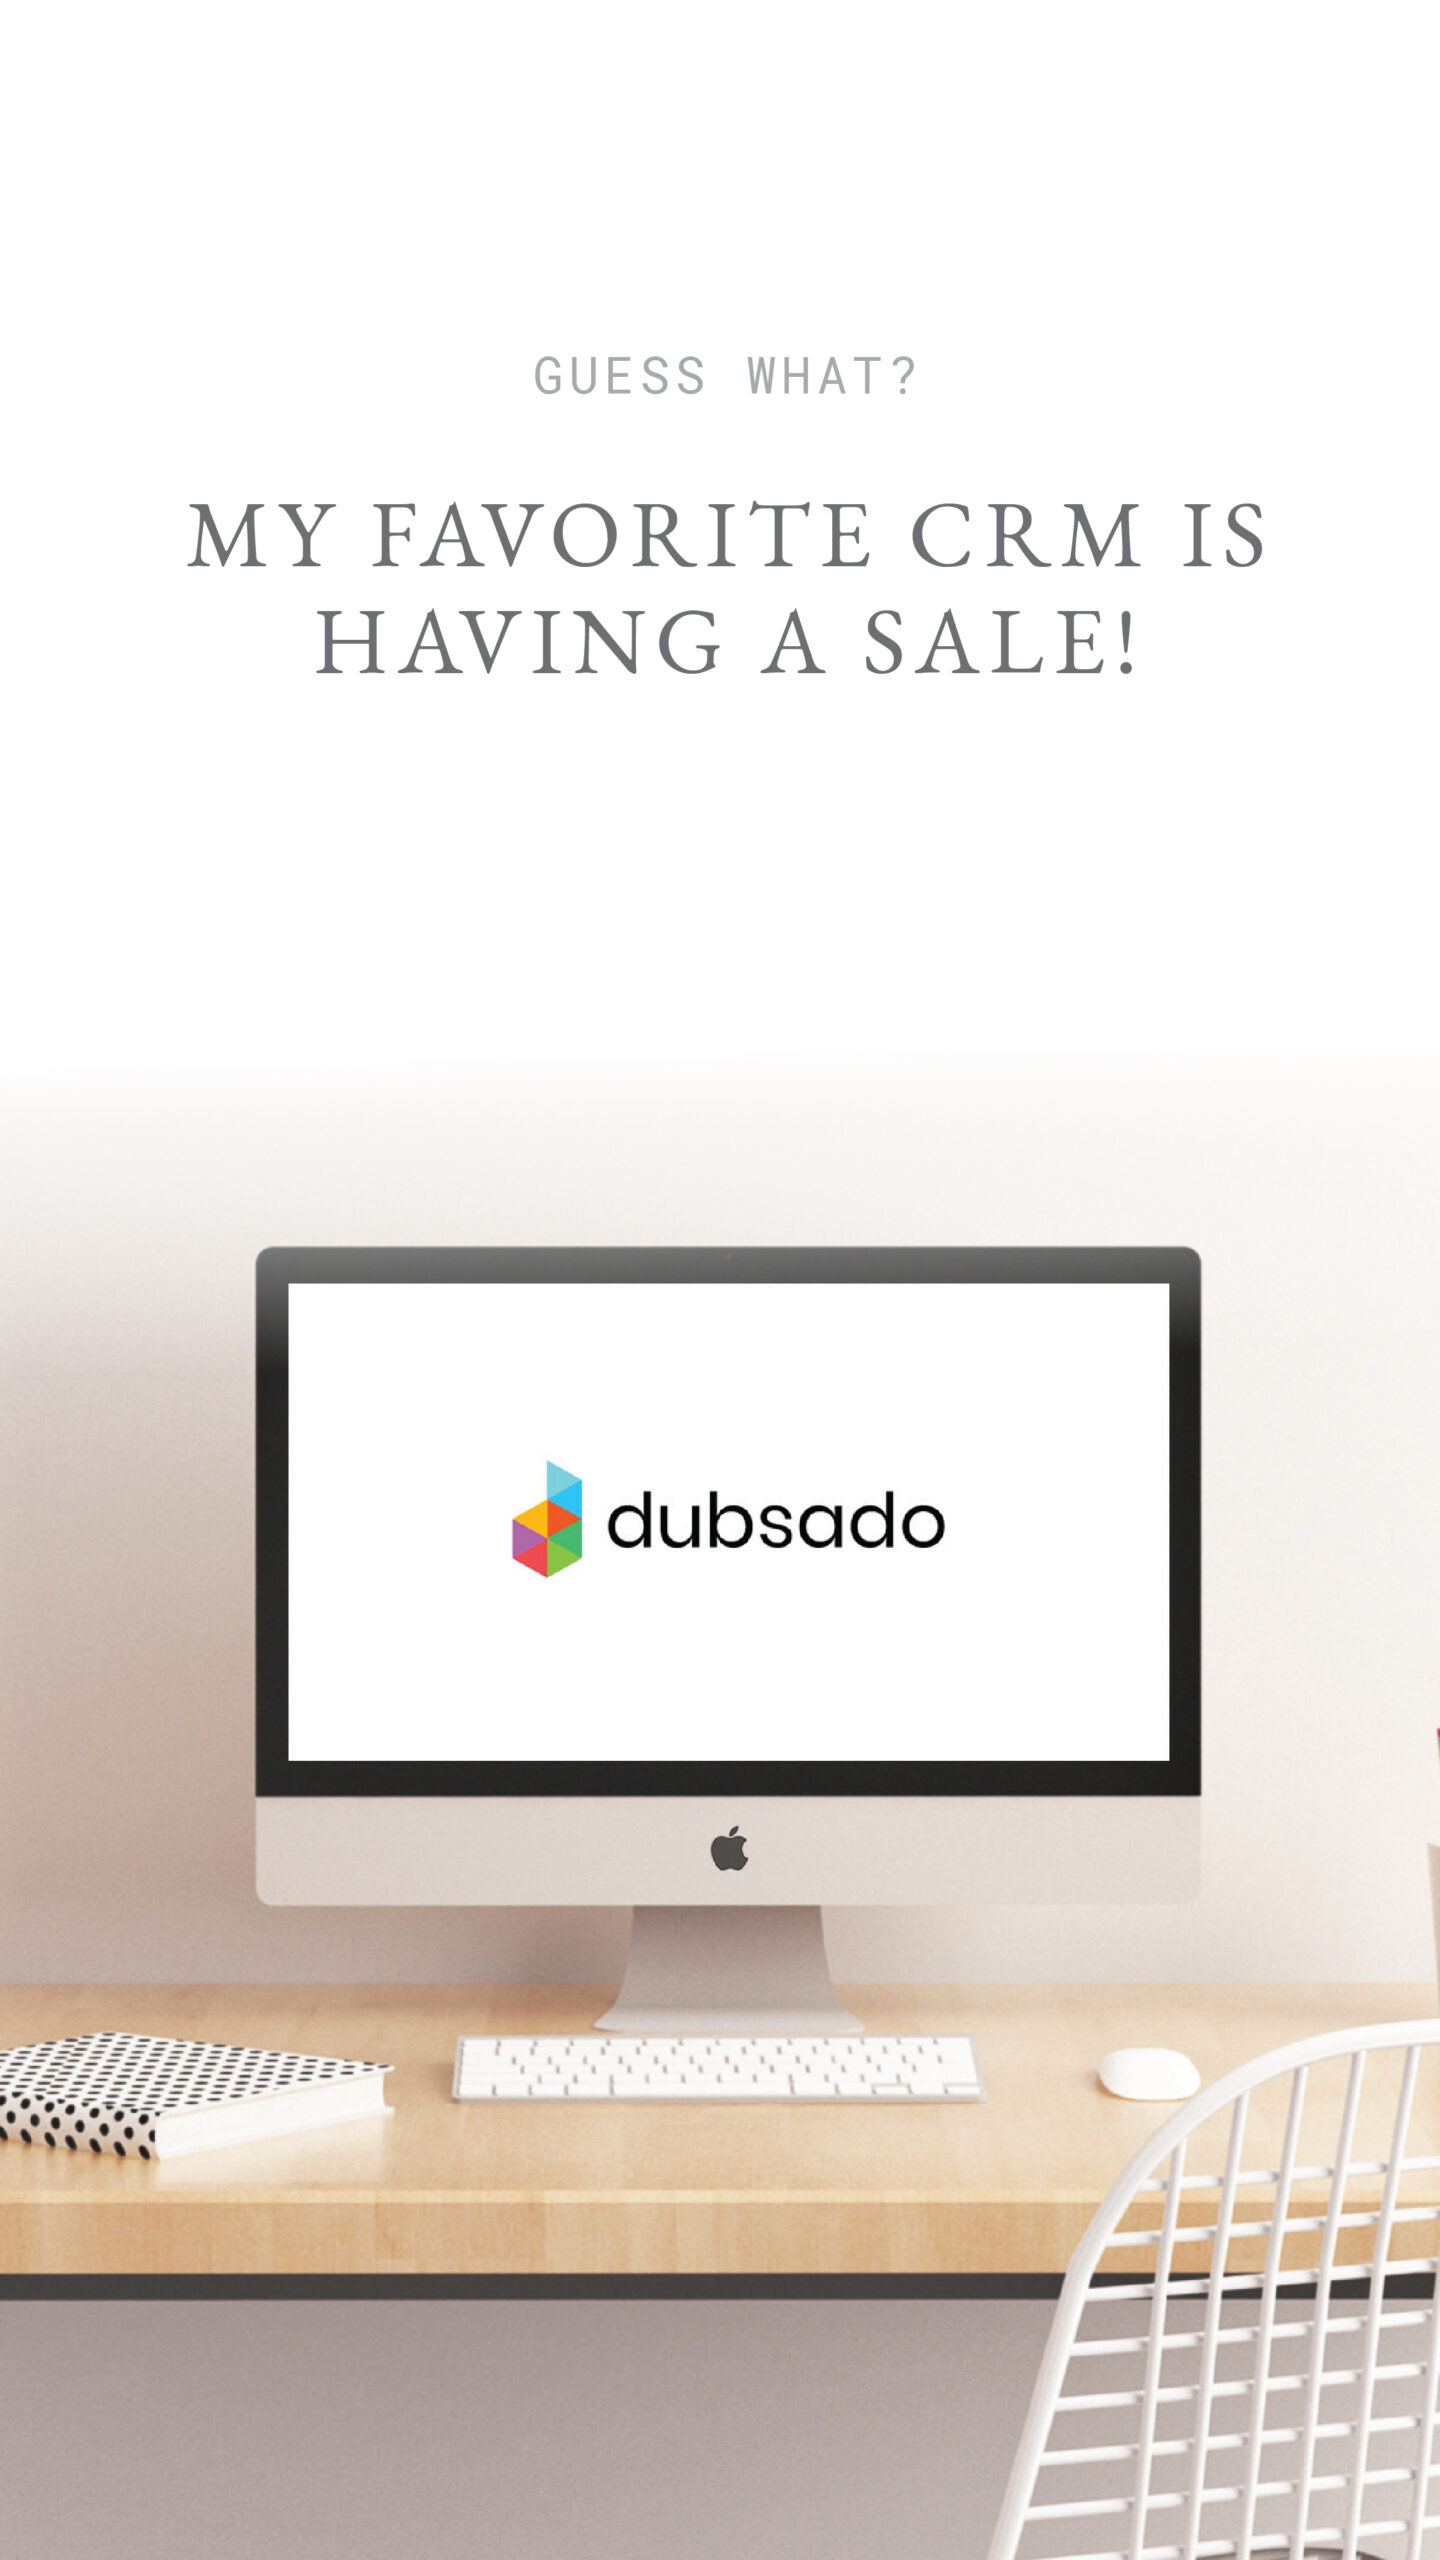 DUBSADO and why I love it! For the birthworkers…